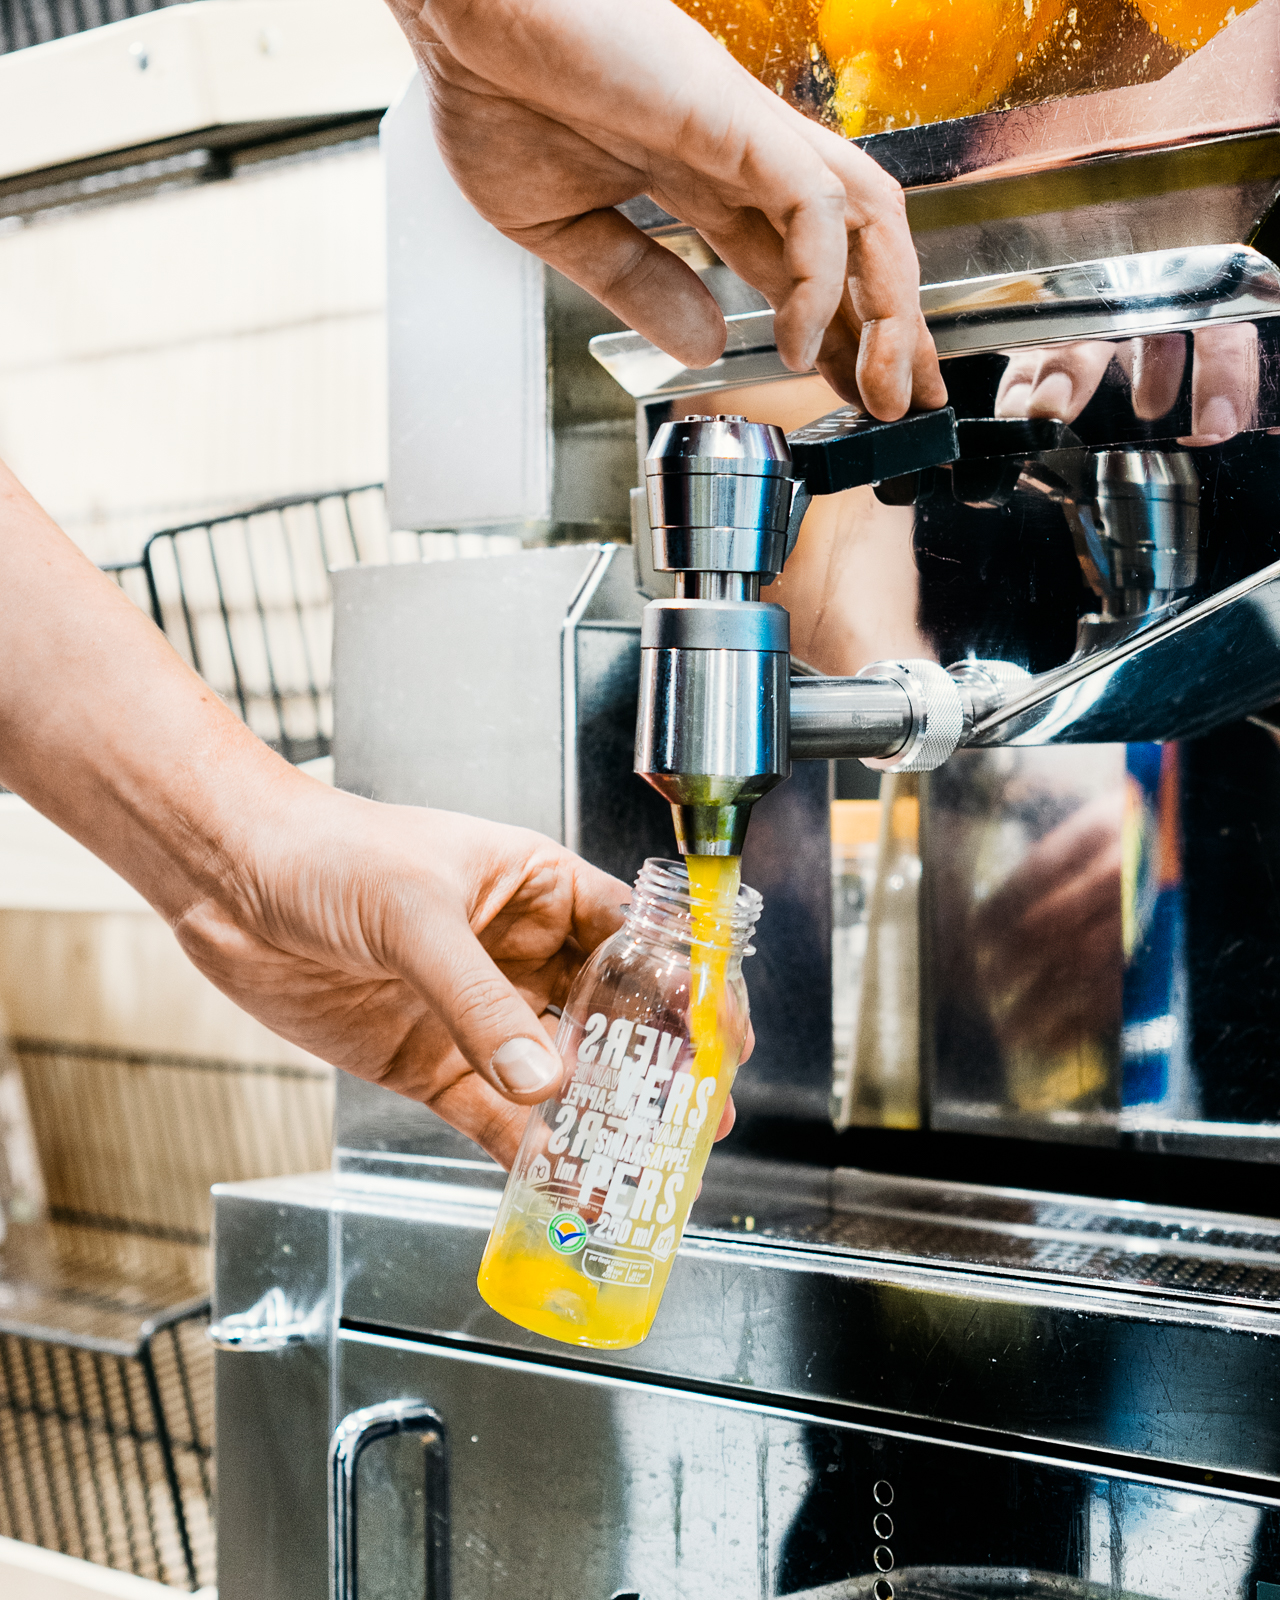 Customers pick their oranges, drop them into the large-capacity storage basket and the machine peels and squeezes the juice into take-away bottles to be paid at the cash register.